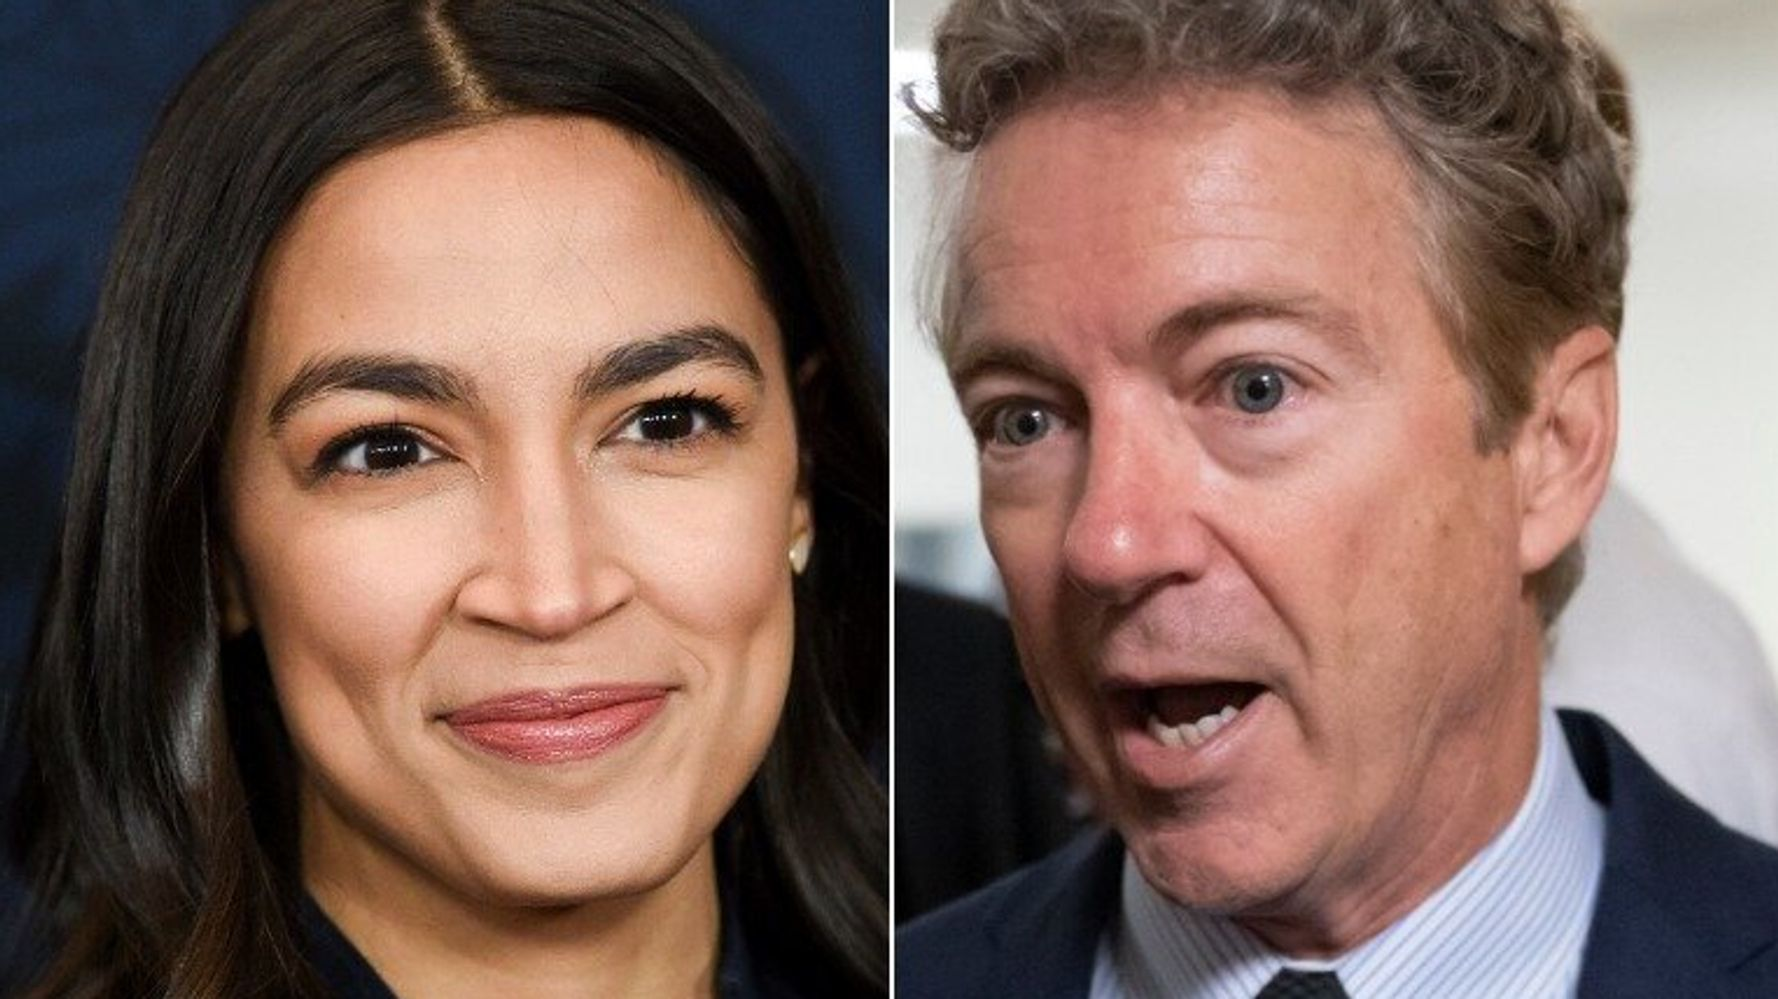 Westlake Legal Group 5e201bf822000056004729f9 Alexandria Ocasio-Cortez Rips Rand Paul Over GOP's 'Spaceballs' Climate Agenda